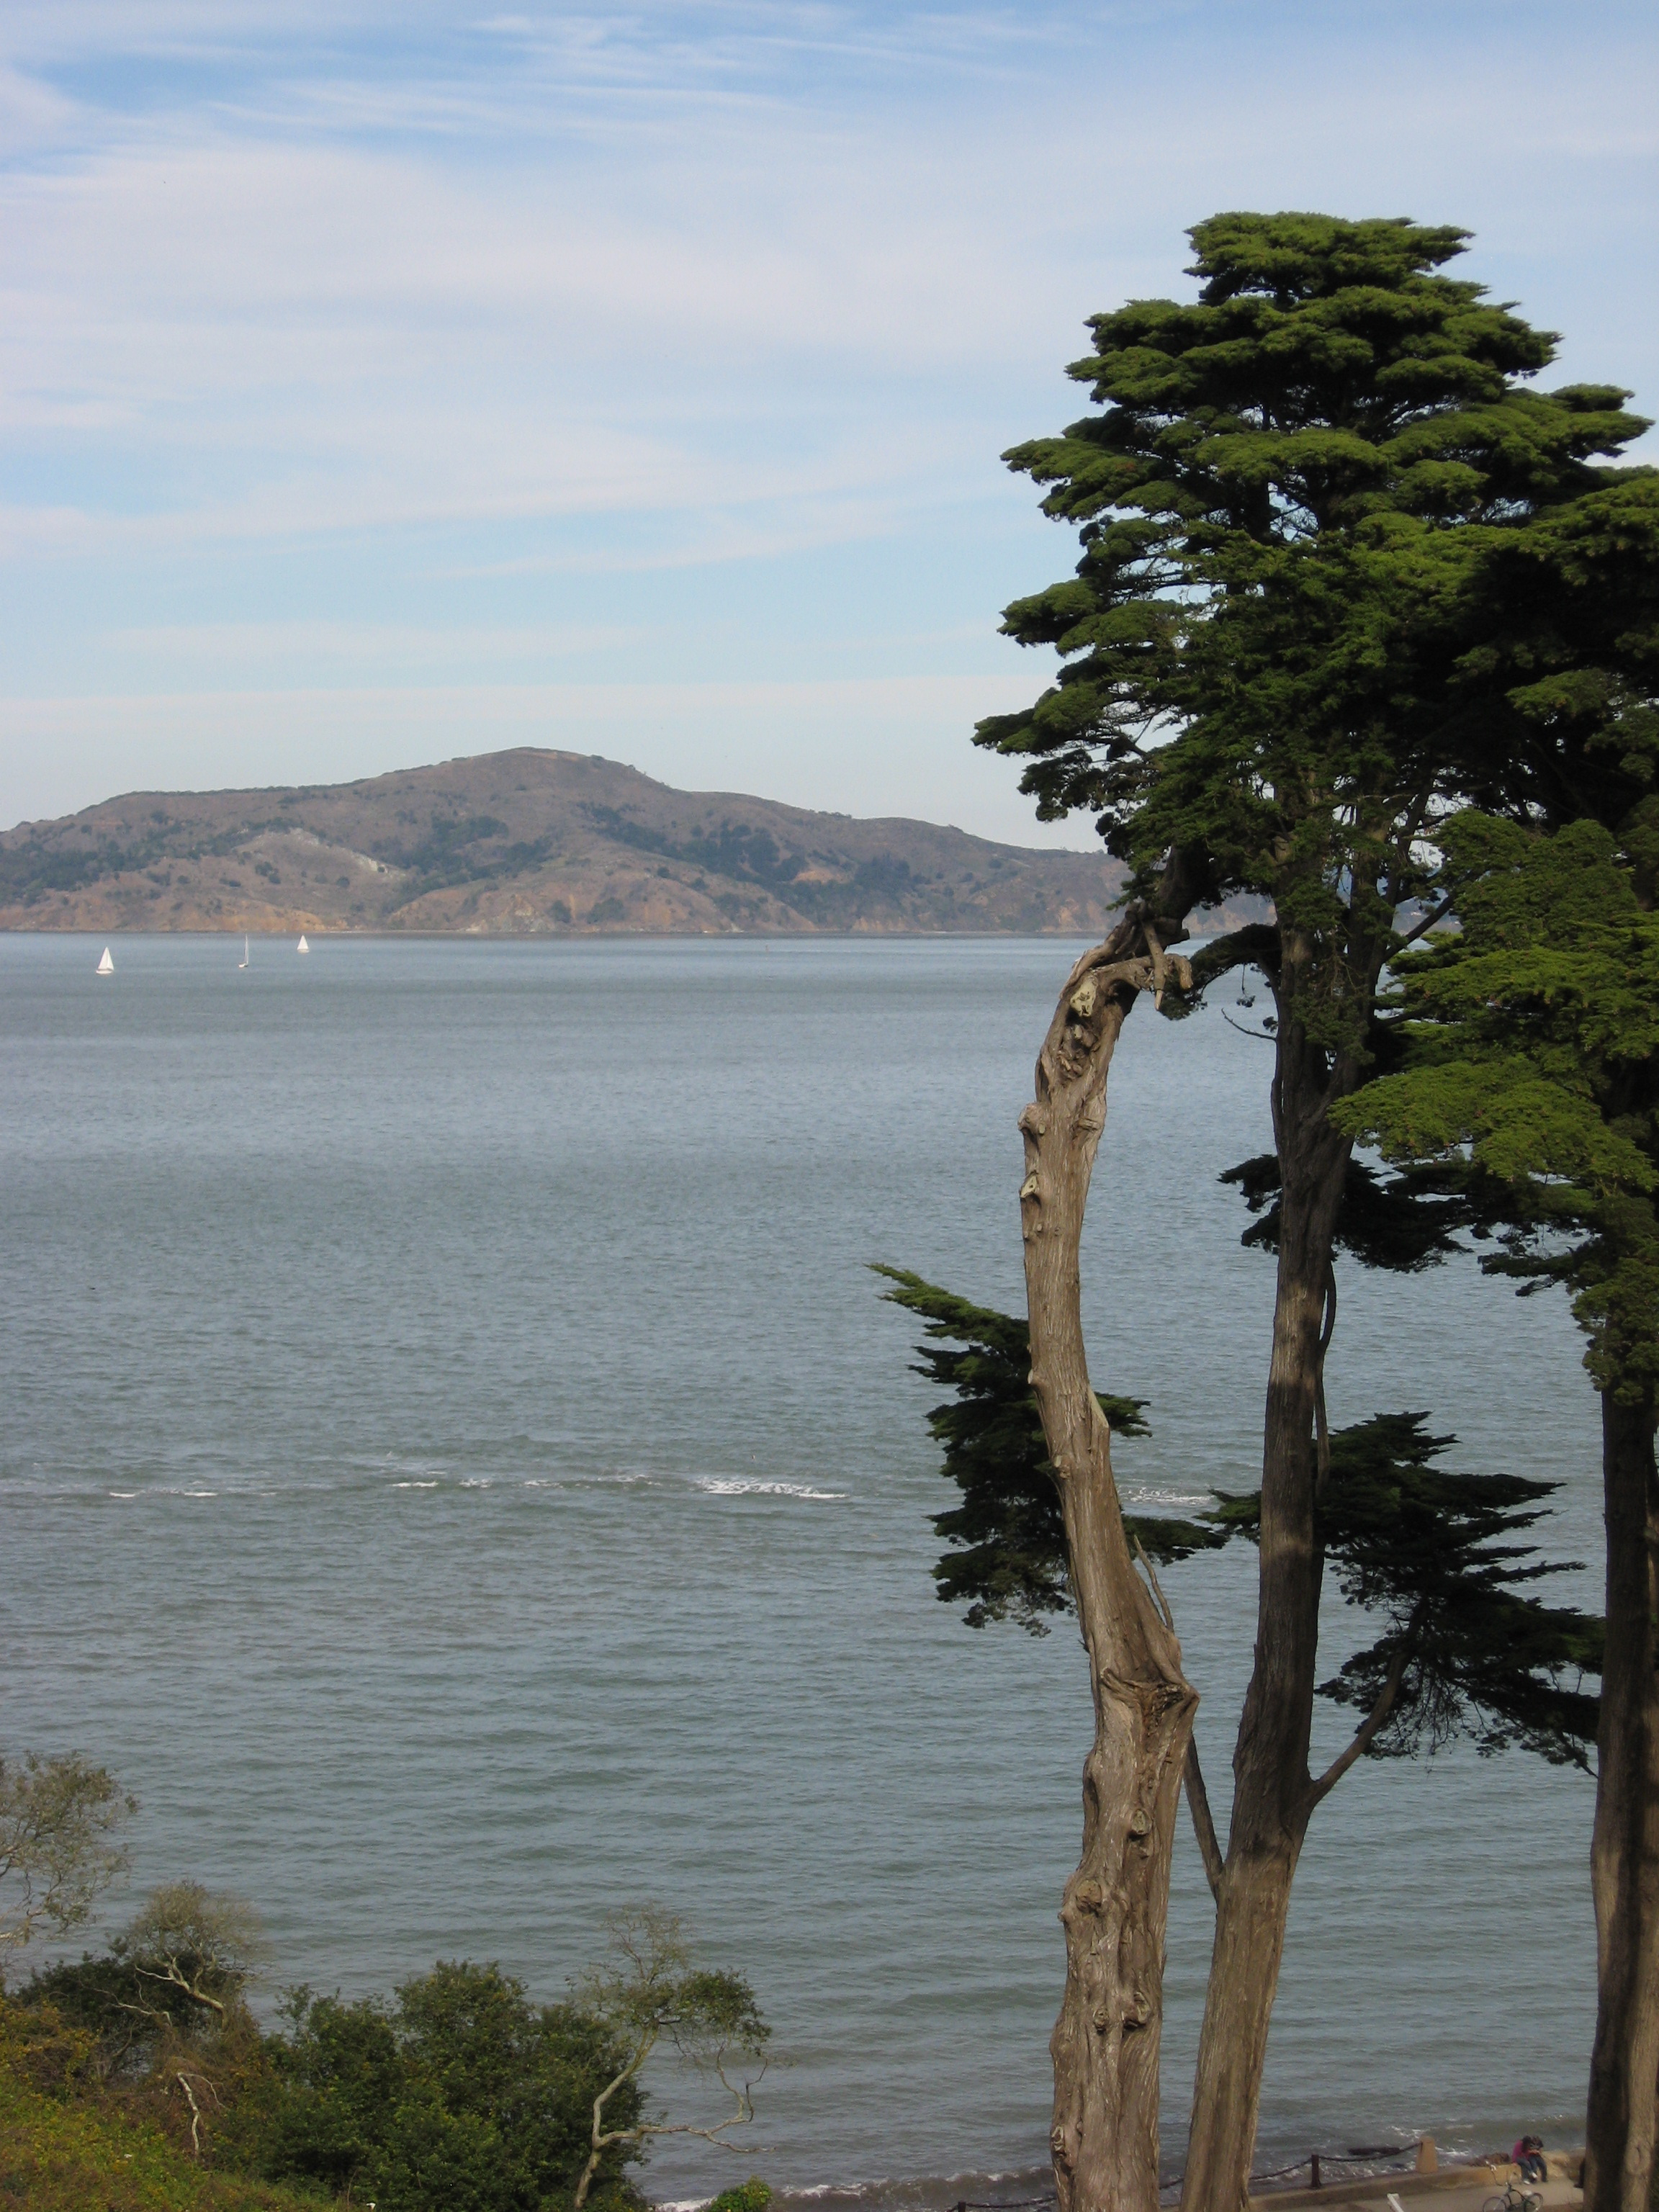 A view of San Francisco Bay.